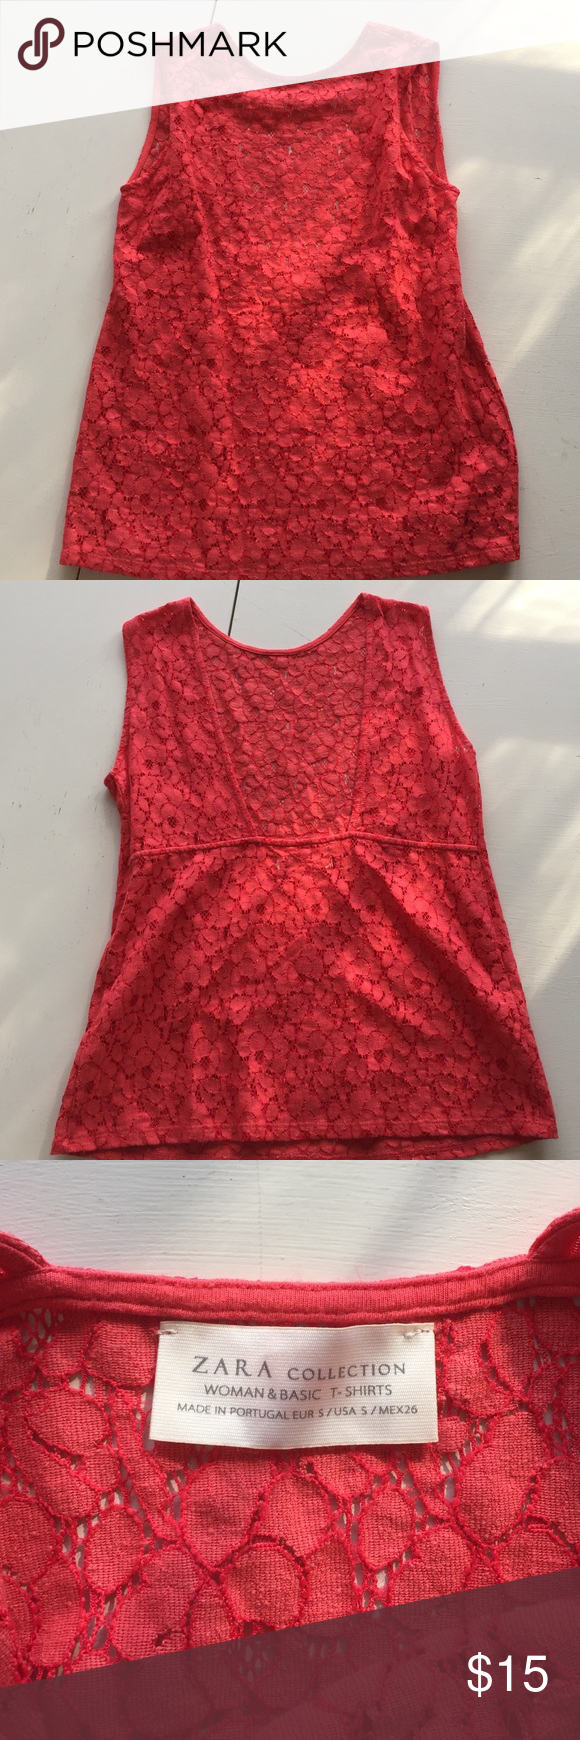 Zara Backless Top Red/orange lace top with back cutout Zara Tops Tank Tops